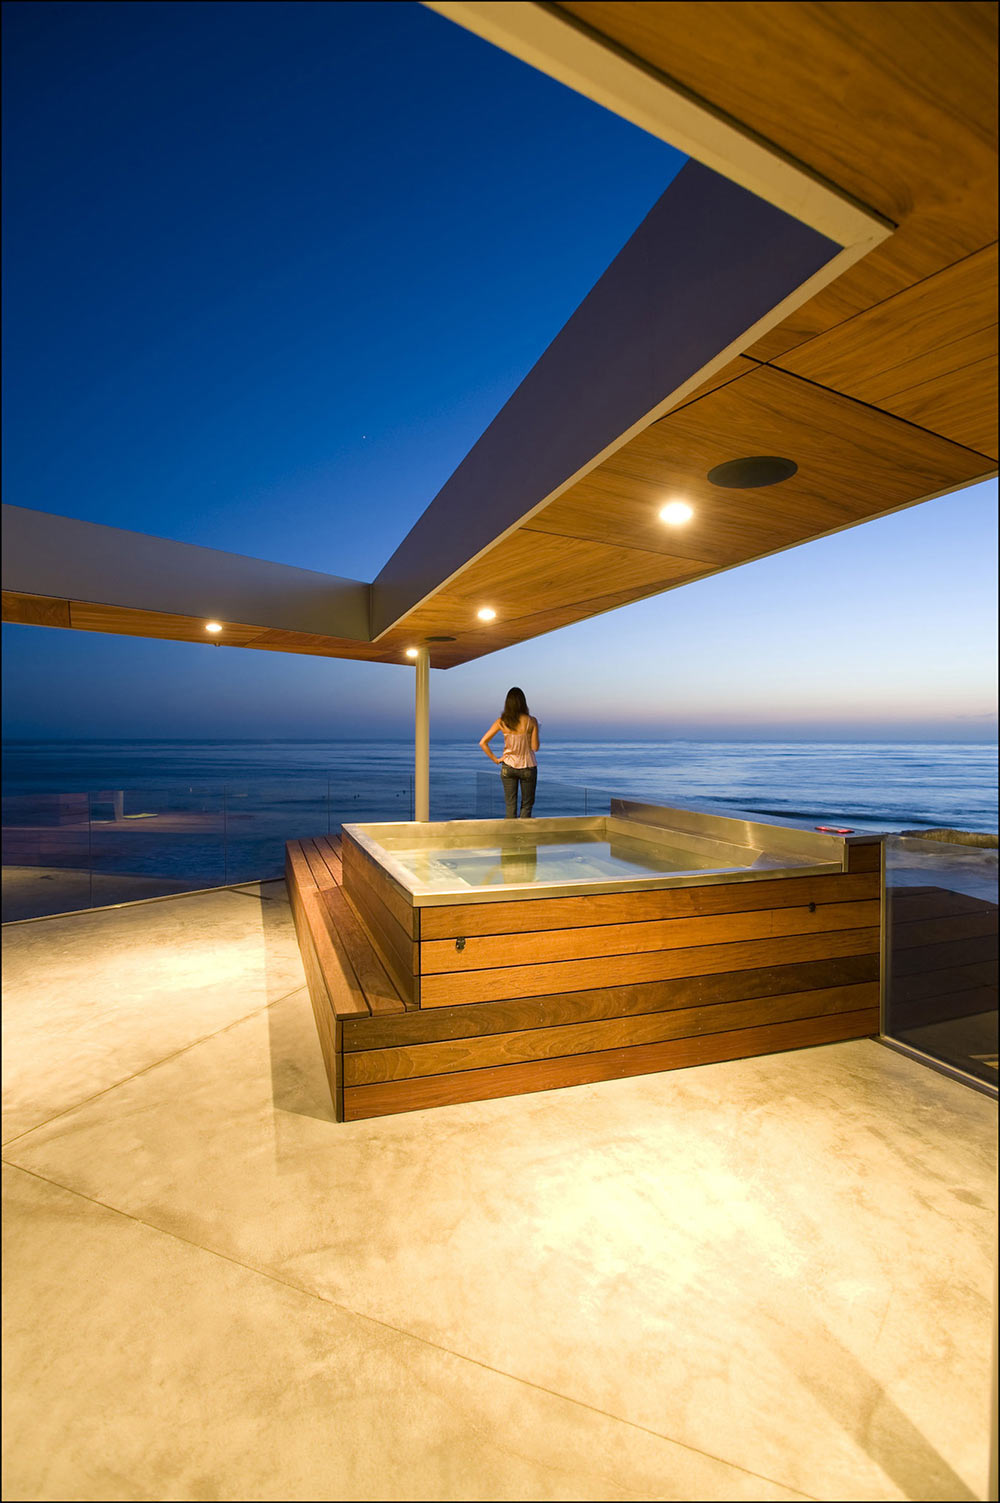 Jacuzzi, Glass Fence, Exquisite Ocean Front Residence in La Jolla, California